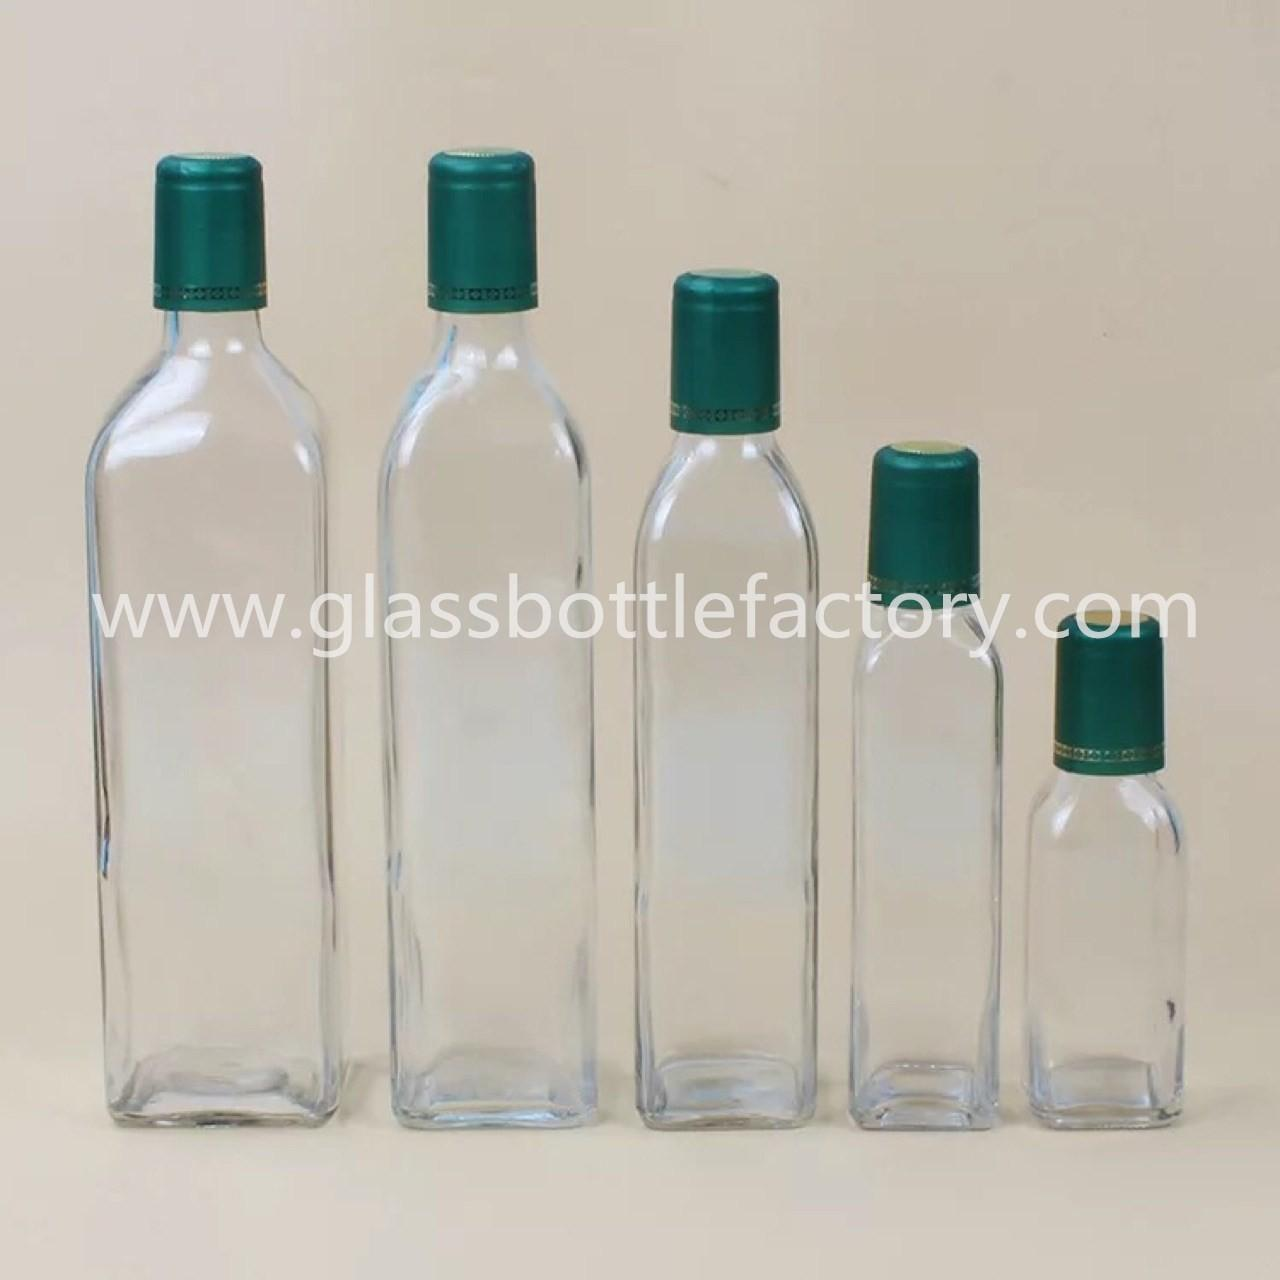 China 100ml,250ml,500ml,750ml,1000ml Clear Square Olive Oil Glass Bottles With Green Caps on sale